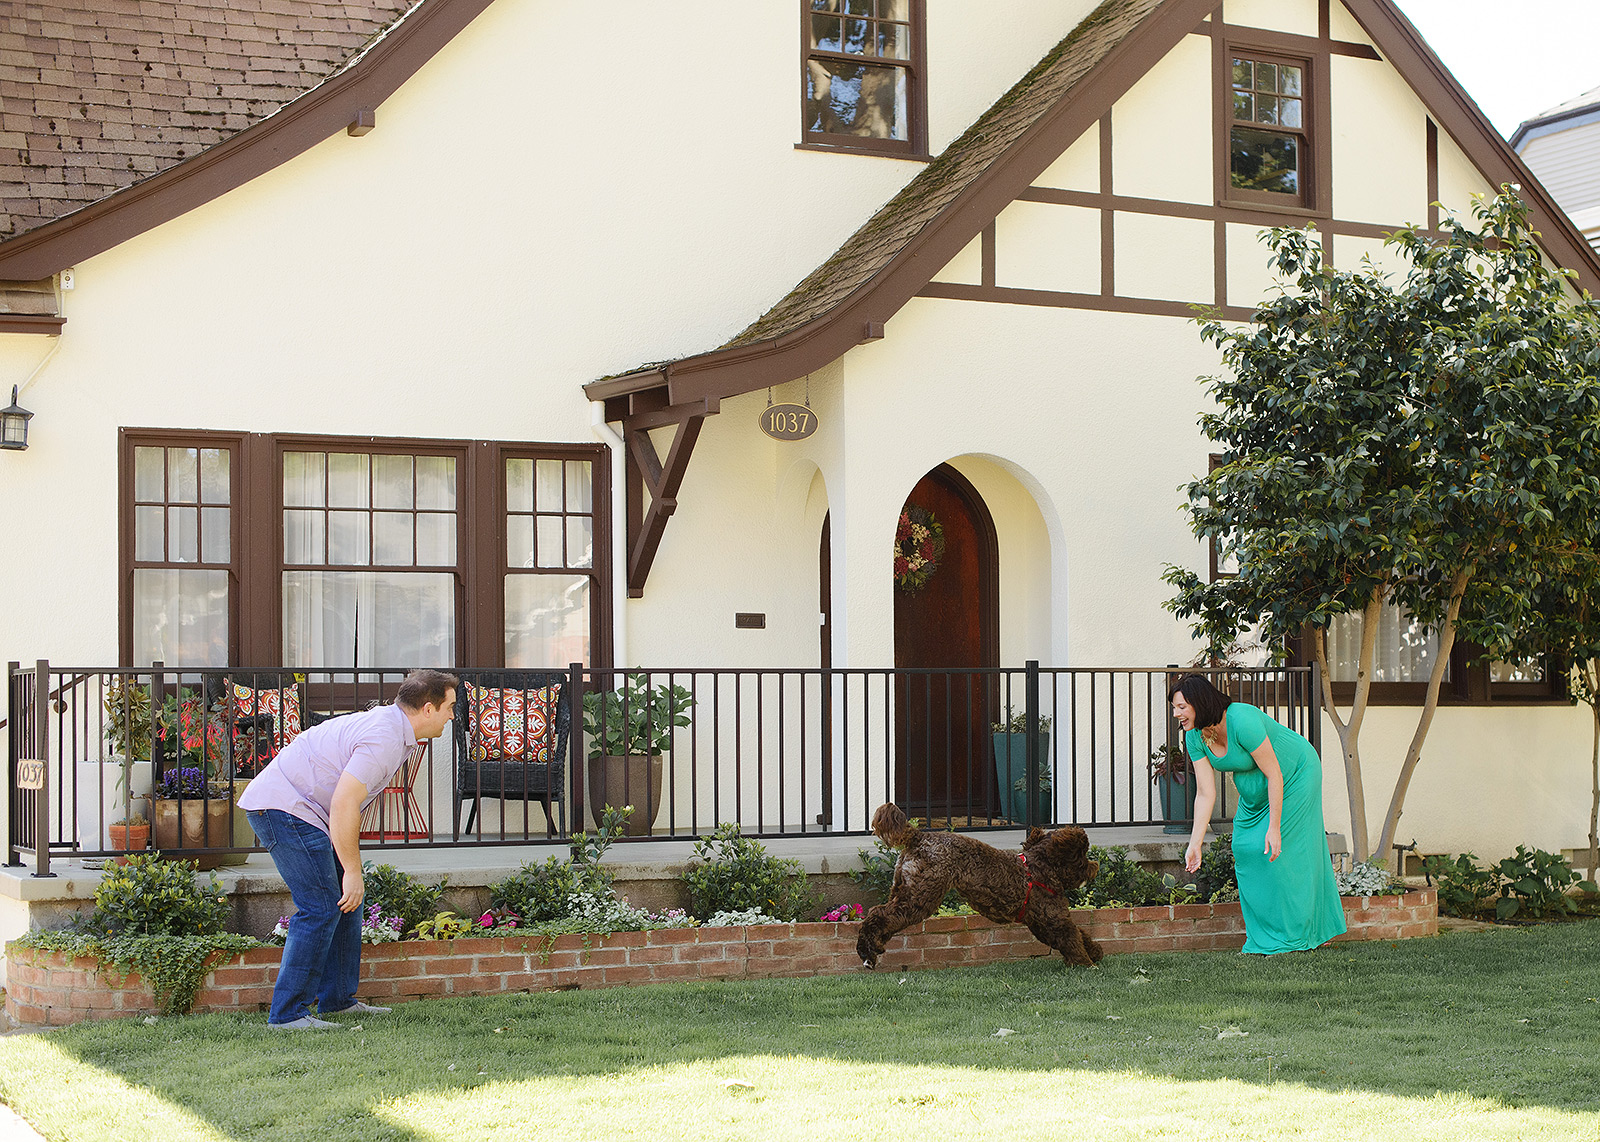 Maternity photos with dog running on front lawn